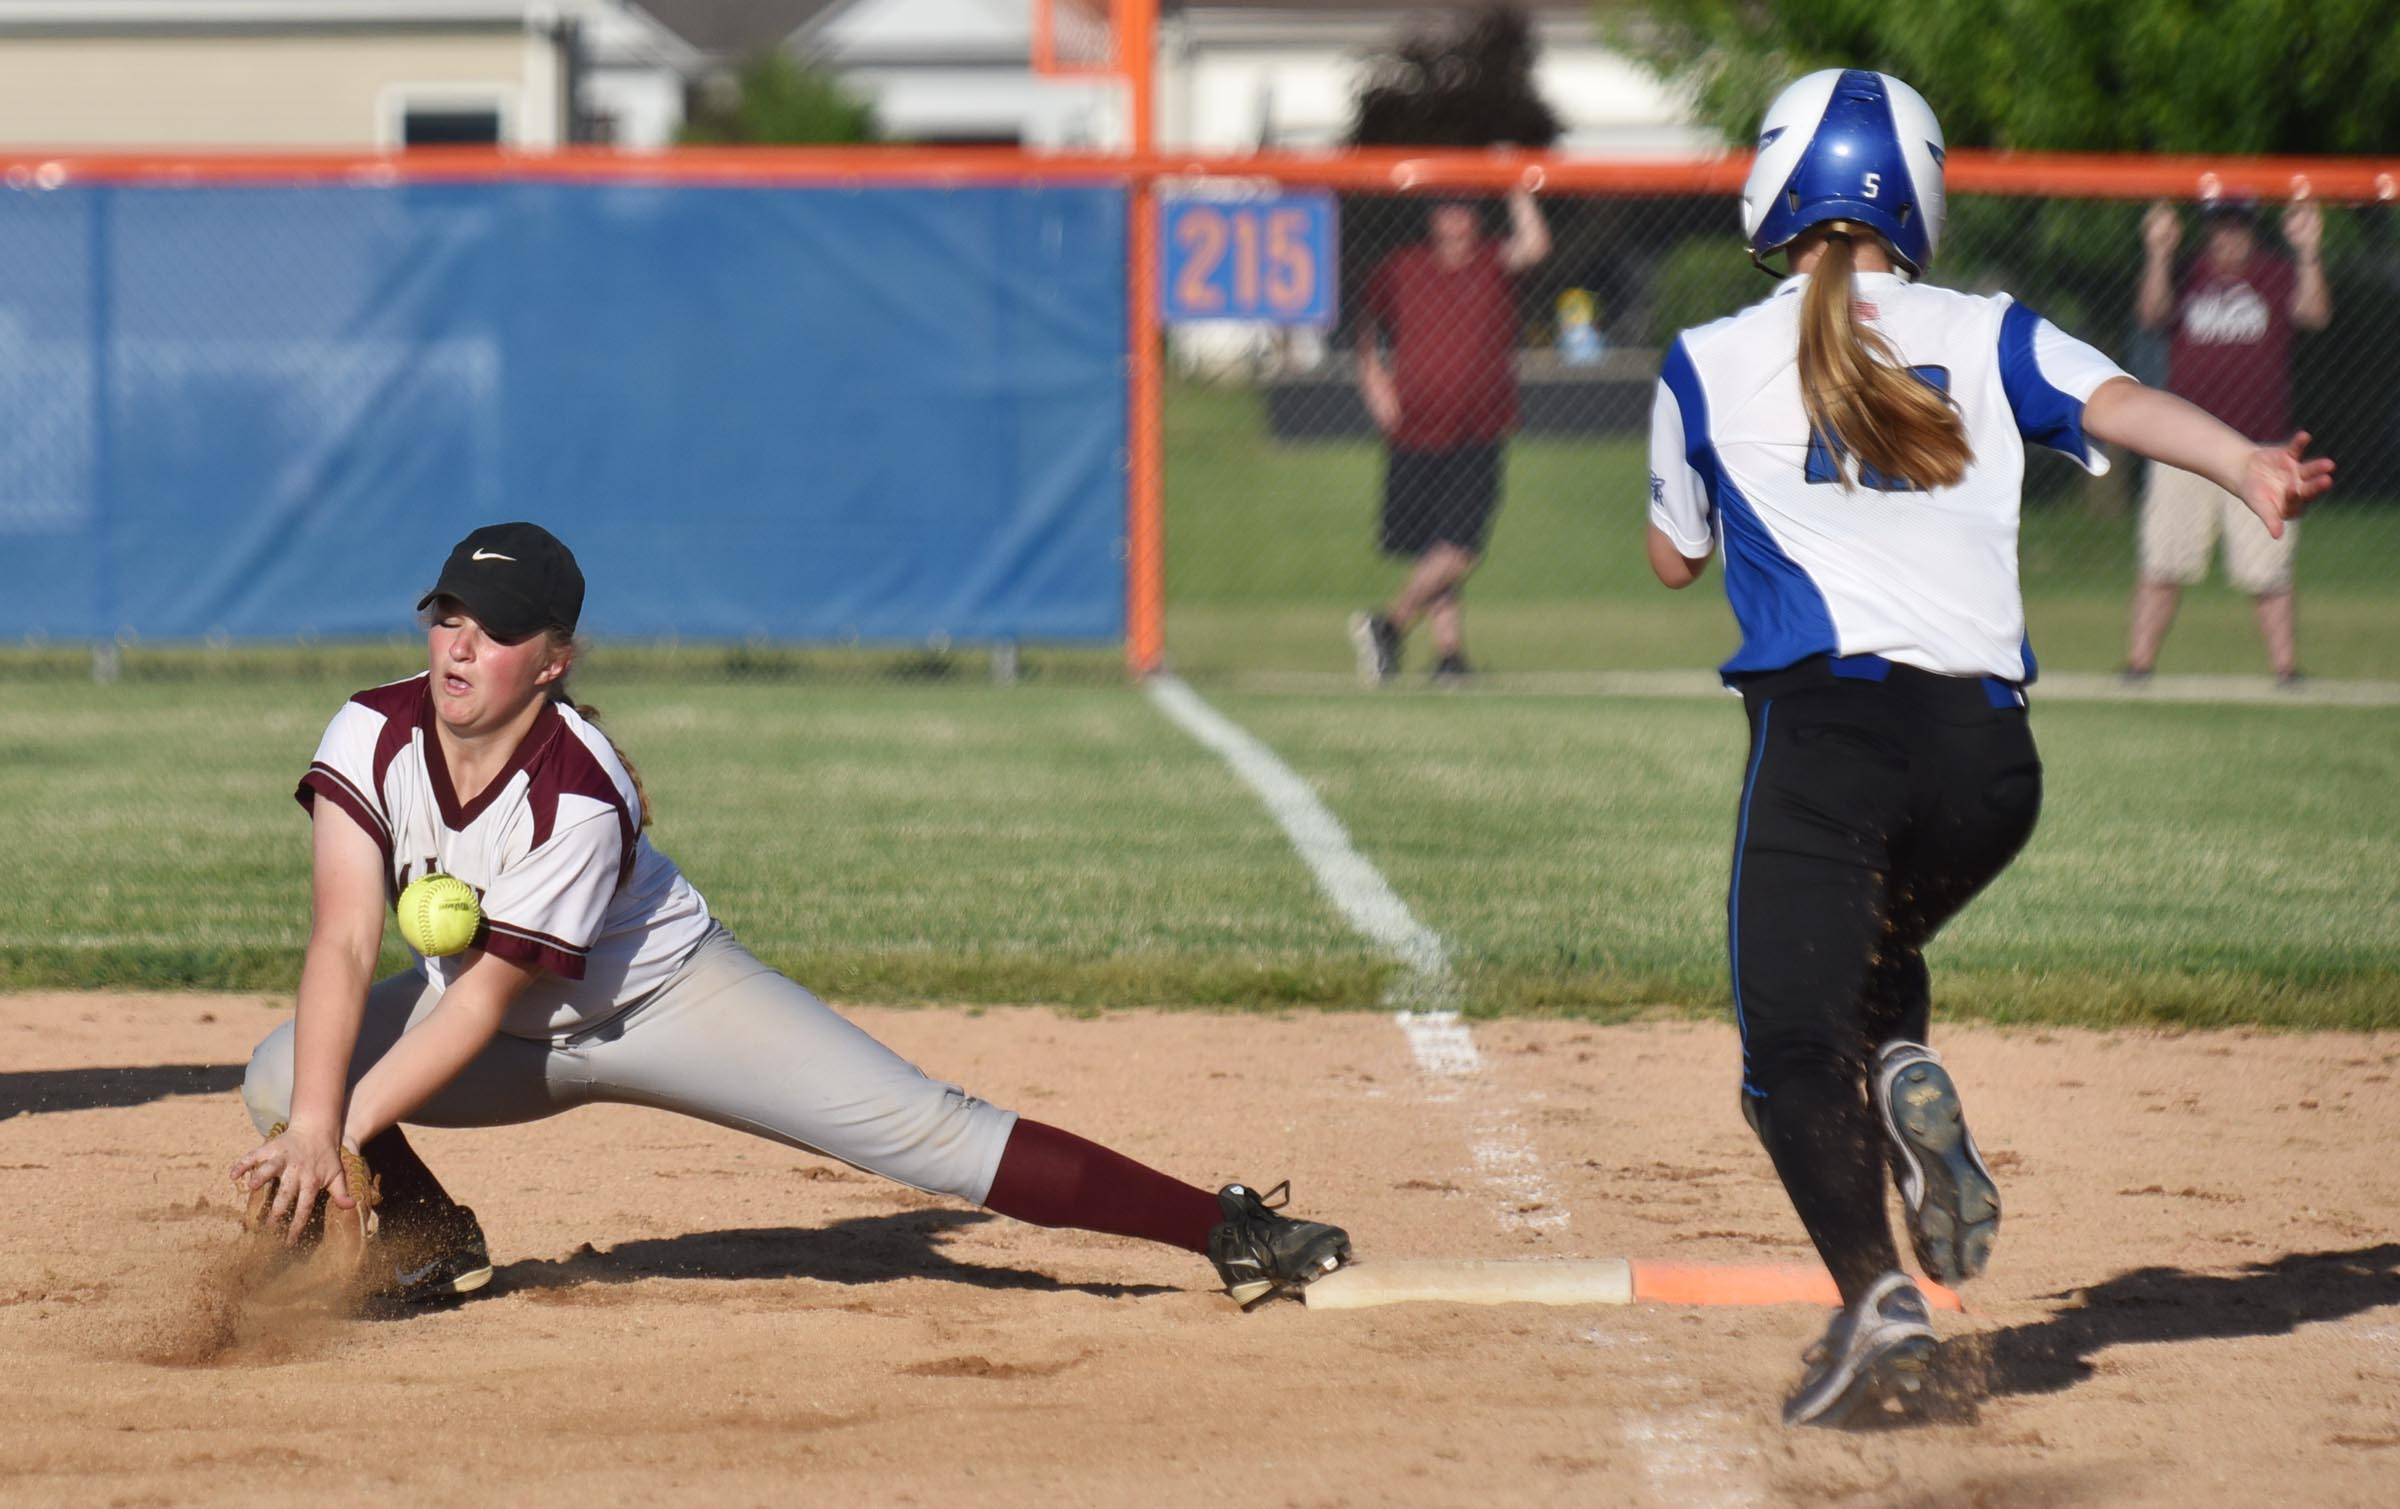 Burlington Central's Sarah Kinney is safe in the bottom of the 10th inning as Marengo's Anna Walsweer is unable to handle a low throw Wednesday in the Genoa-Kingston sectional game. Kinney was stranded on base as Marengo won 1-0.